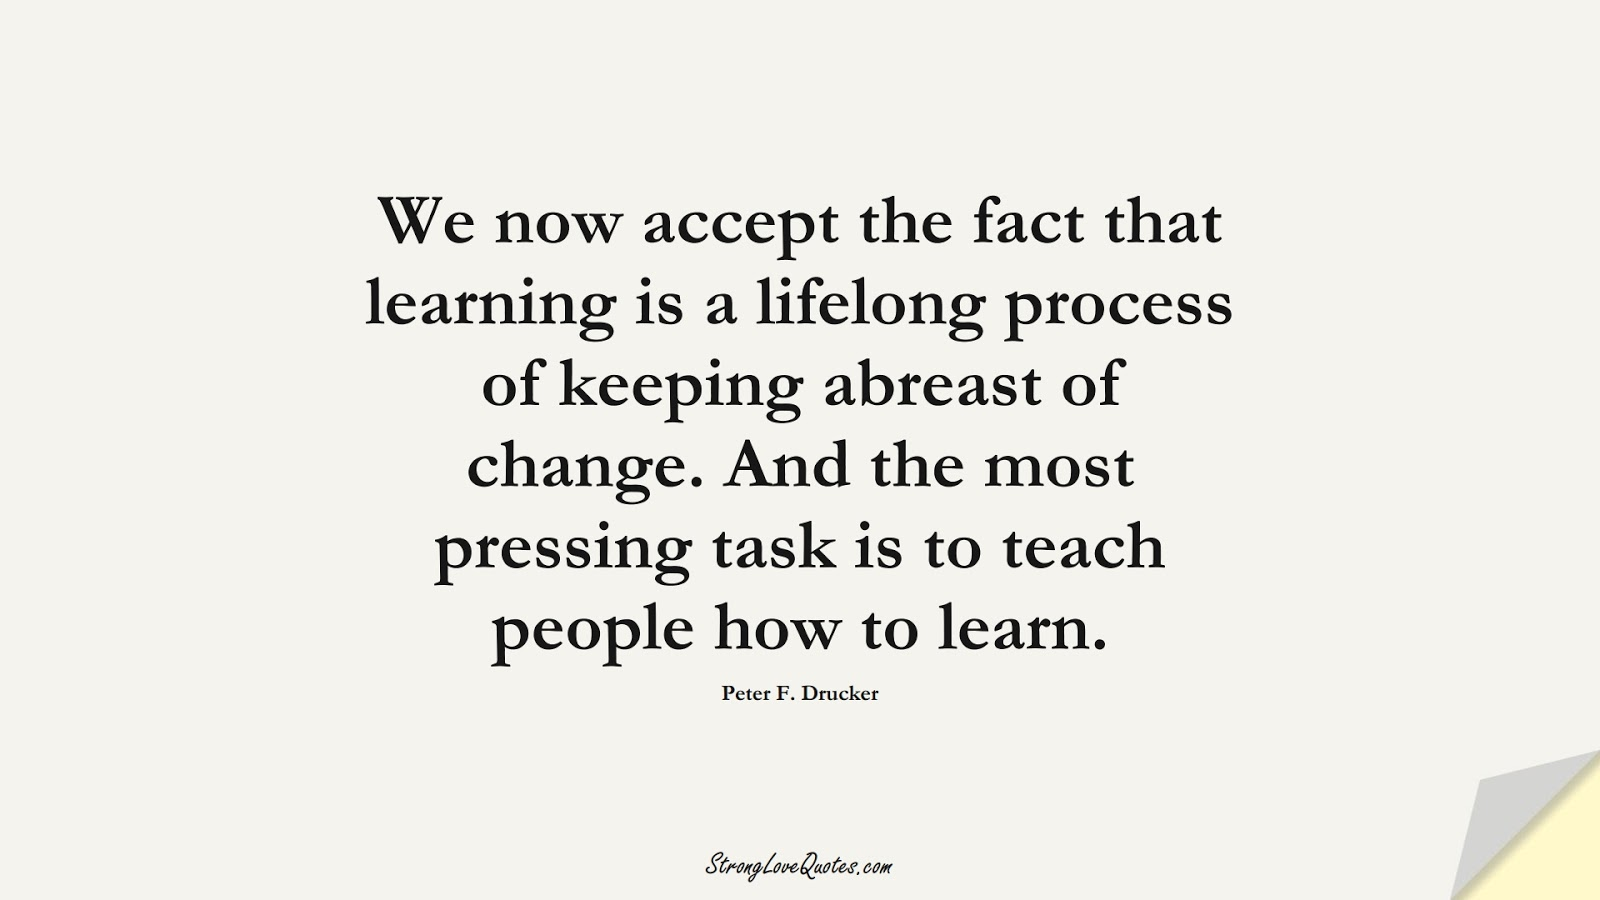 We now accept the fact that learning is a lifelong process of keeping abreast of change. And the most pressing task is to teach people how to learn. (Peter F. Drucker);  #EducationQuotes